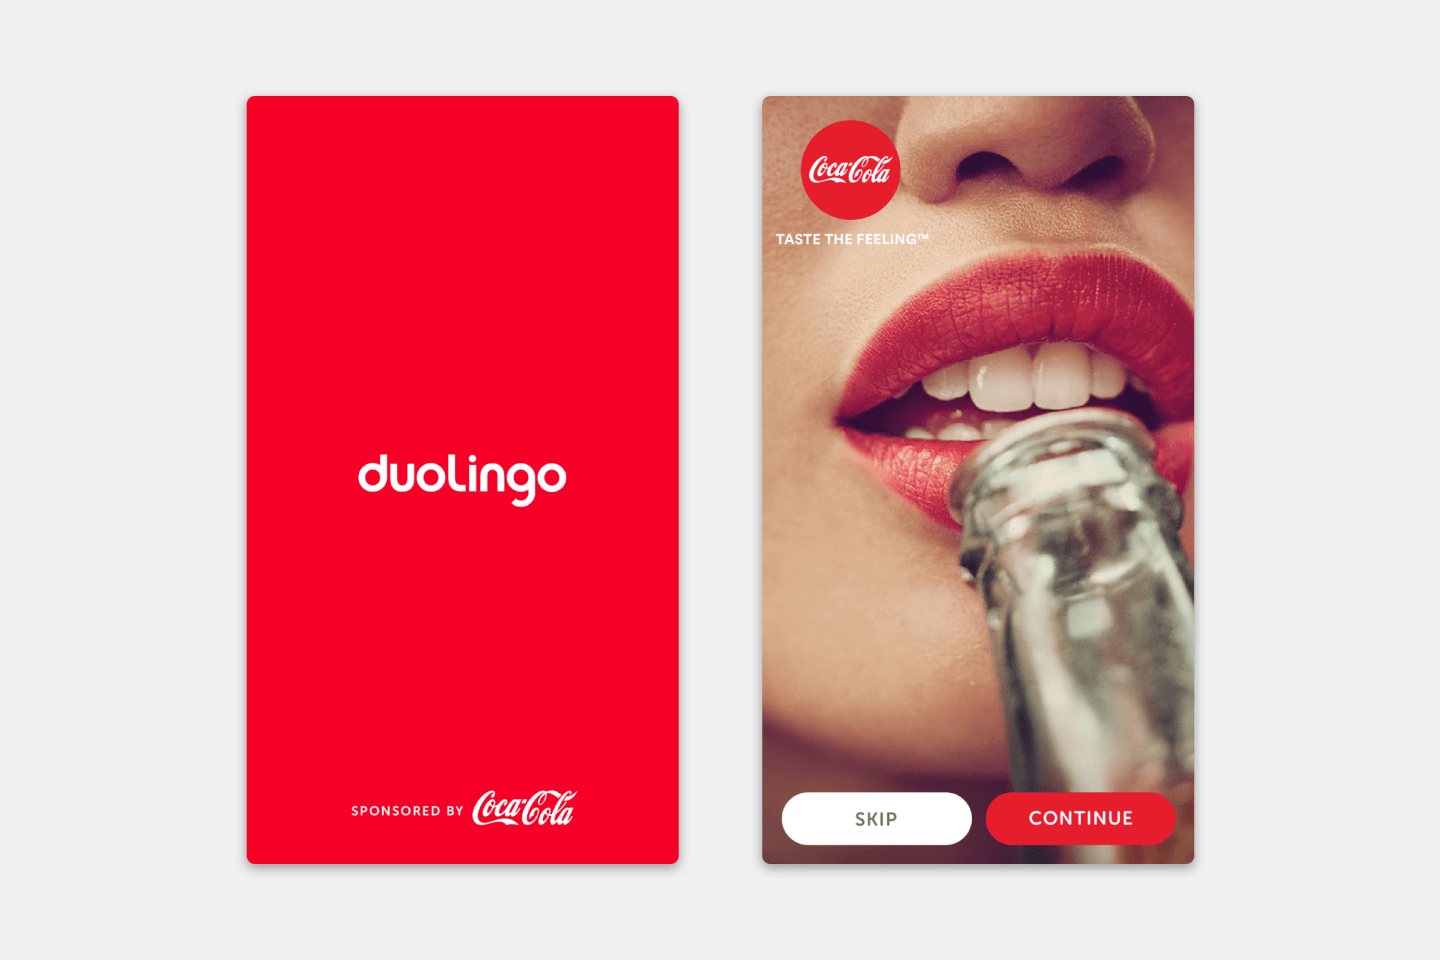 Duolingo Sponsorships - Coca Cola Advertisement